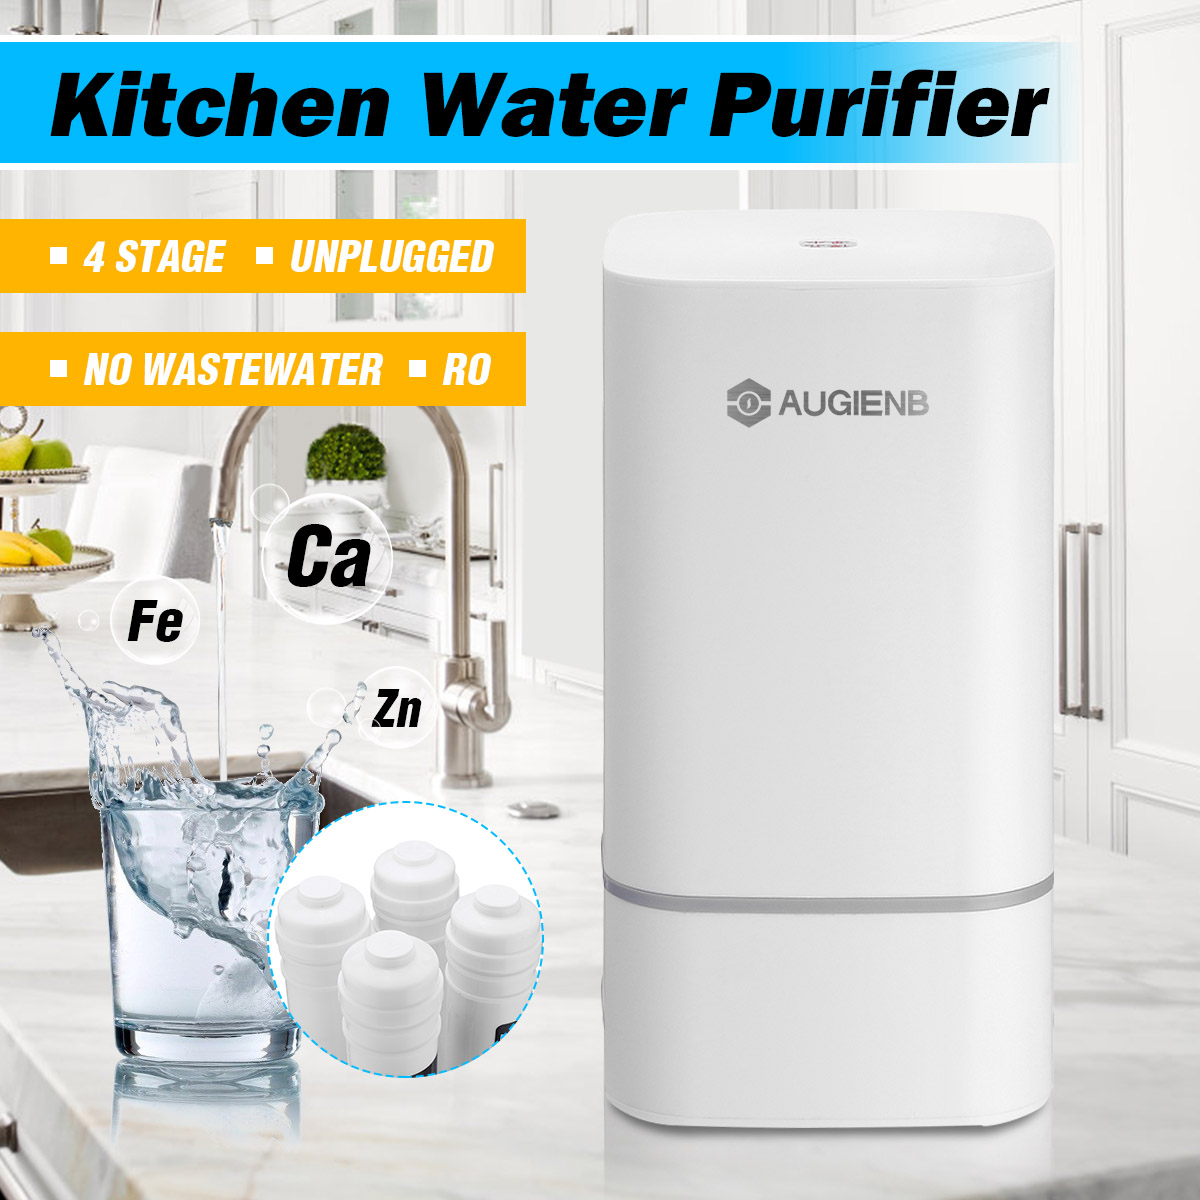 Reverse Osmosis Water Filtration System - 4  RO Water Purifier  - Under Sink Water Filter - Home Water Filtration System